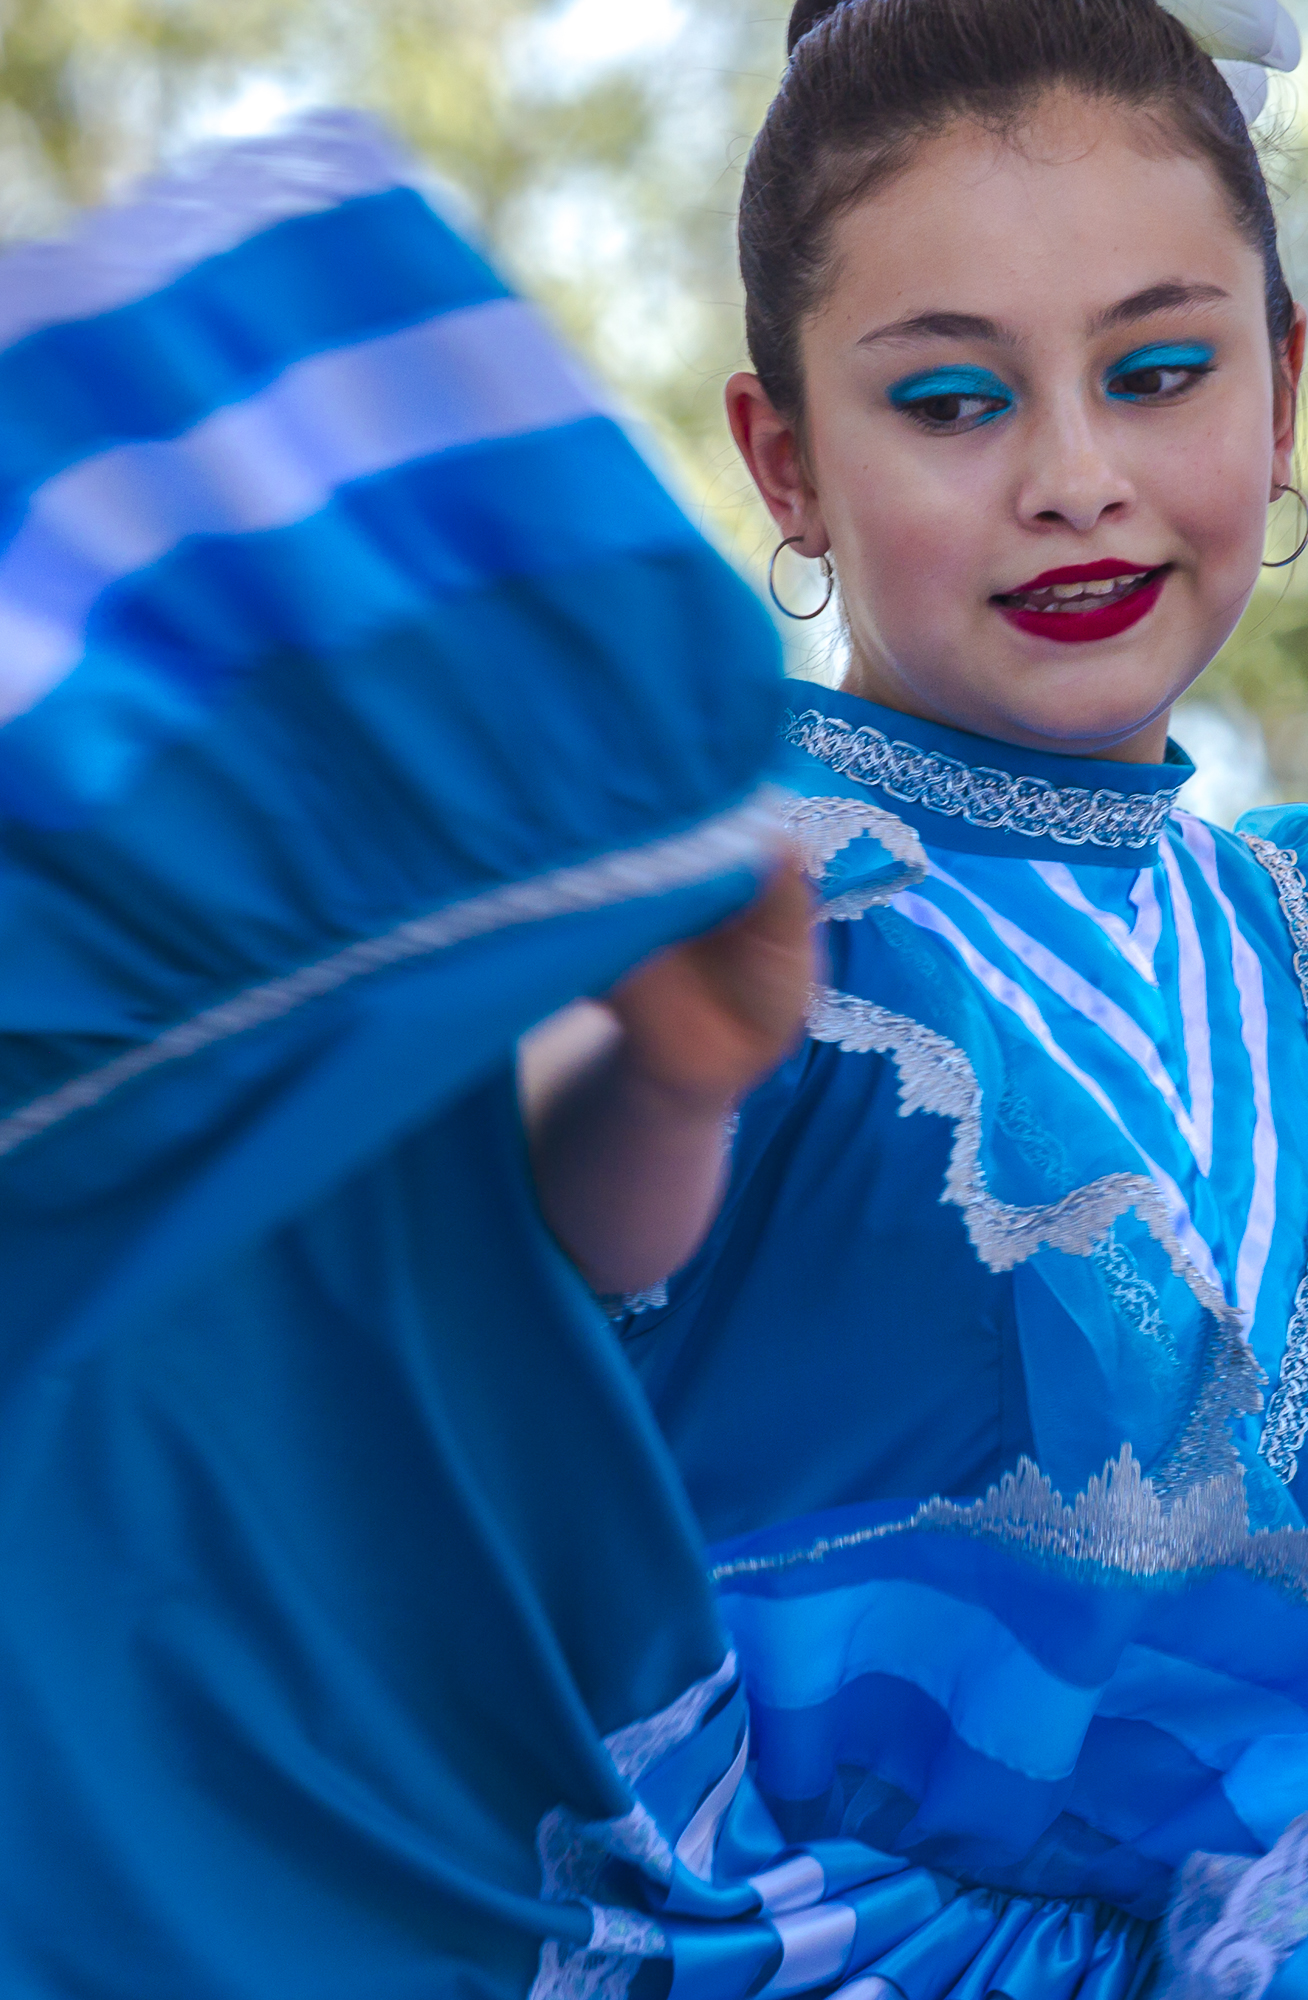 Maria Papas performs a traditional Folklora dance at Olvera Streets Cinco De Mayo celebration in downtown Los Angeles, California on May 5, 2018. (Matthew Martin/Corsair Photo)